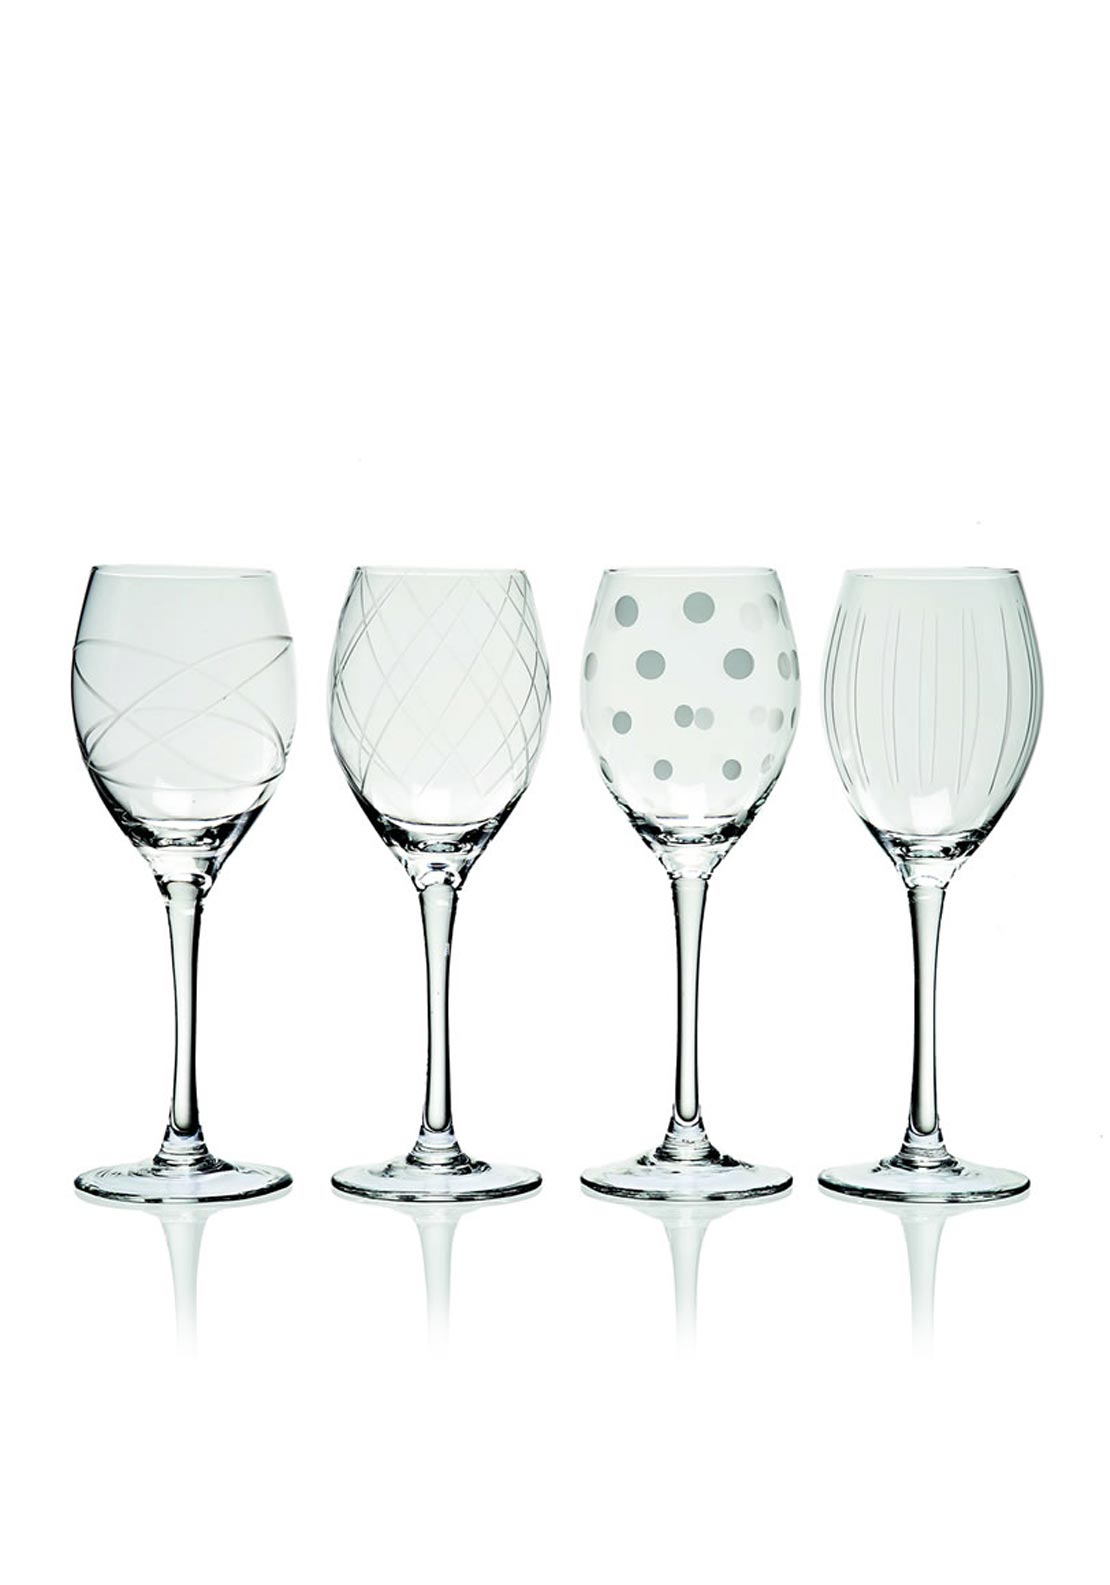 Newgrange Living Clear Cut Party Wine Glasses, Set of 4